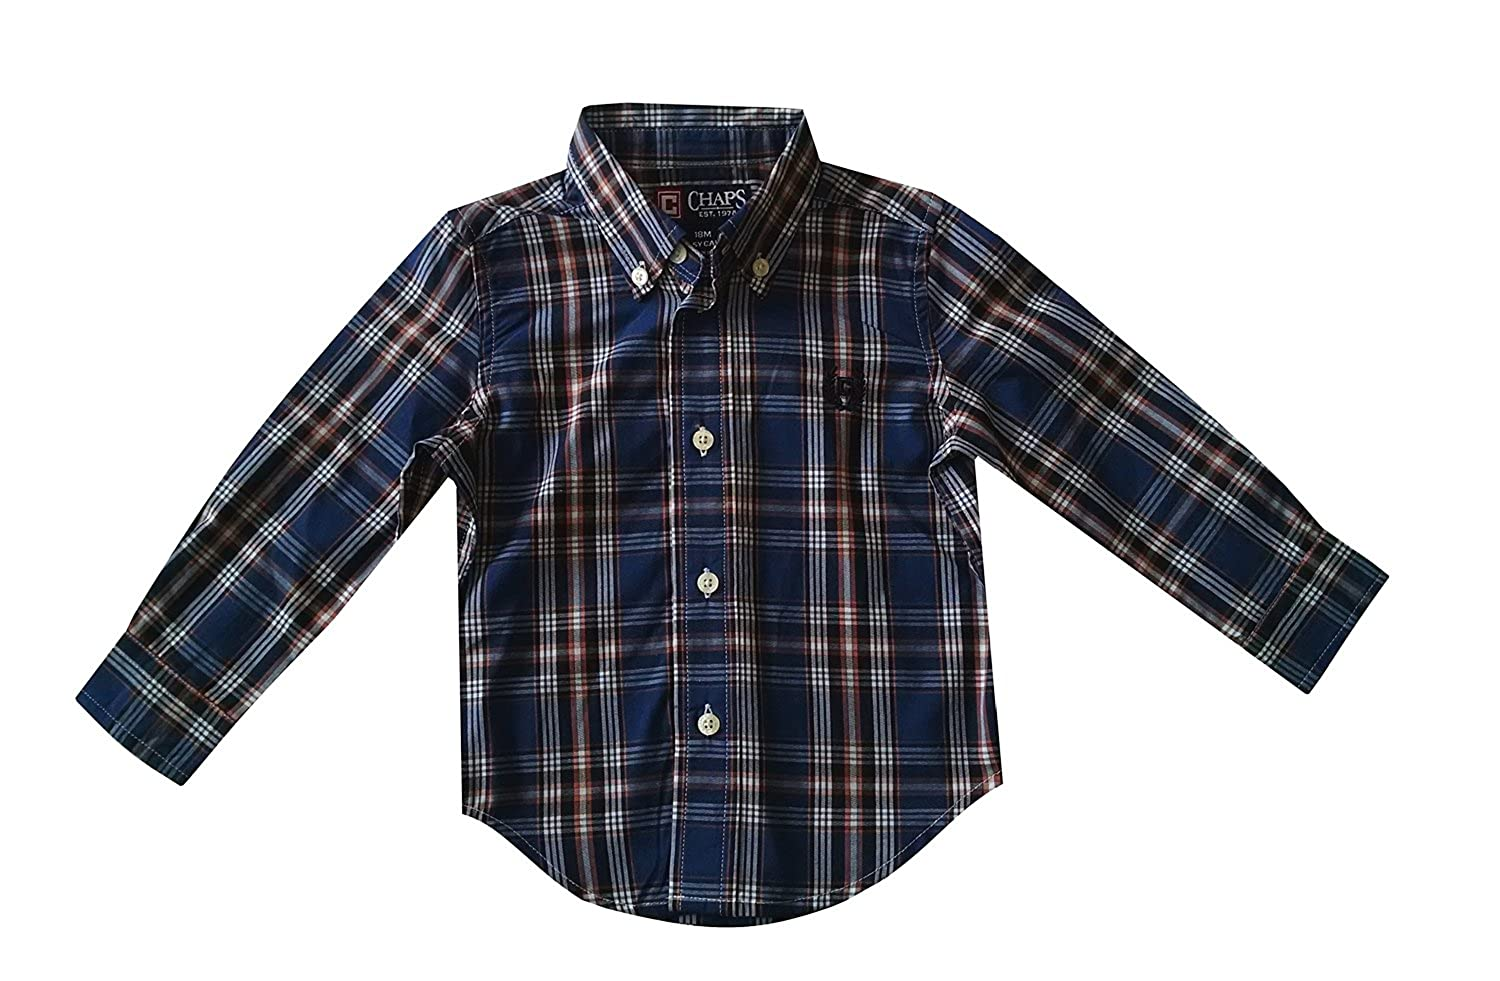 Chaps Baby Boys Plaid Button Down Long Sleeve Shirt Size - 18 Months Blue